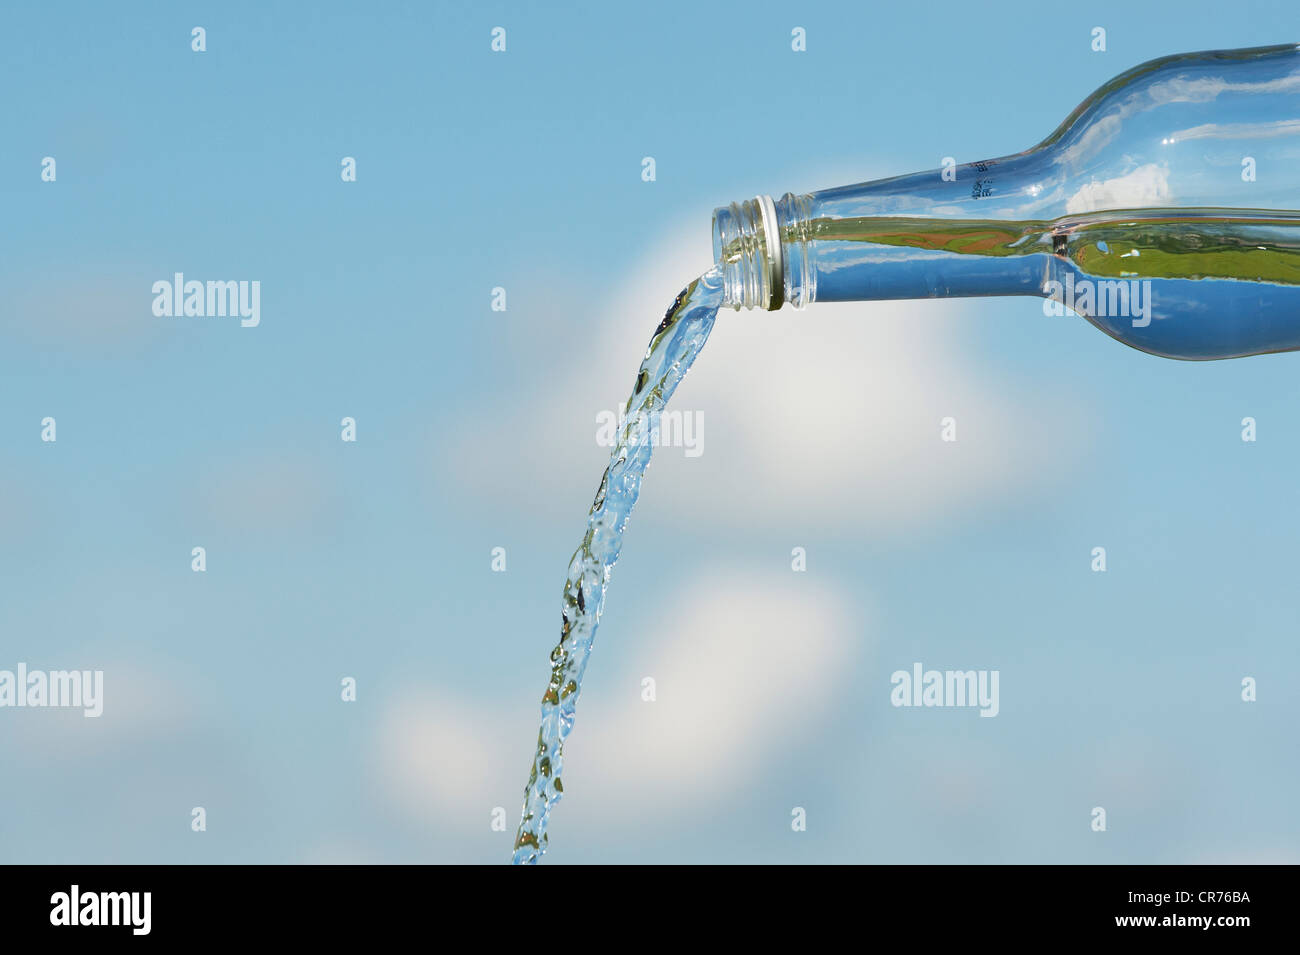 Pouring drinking water from a glass bottle against a blue sky - Stock Image